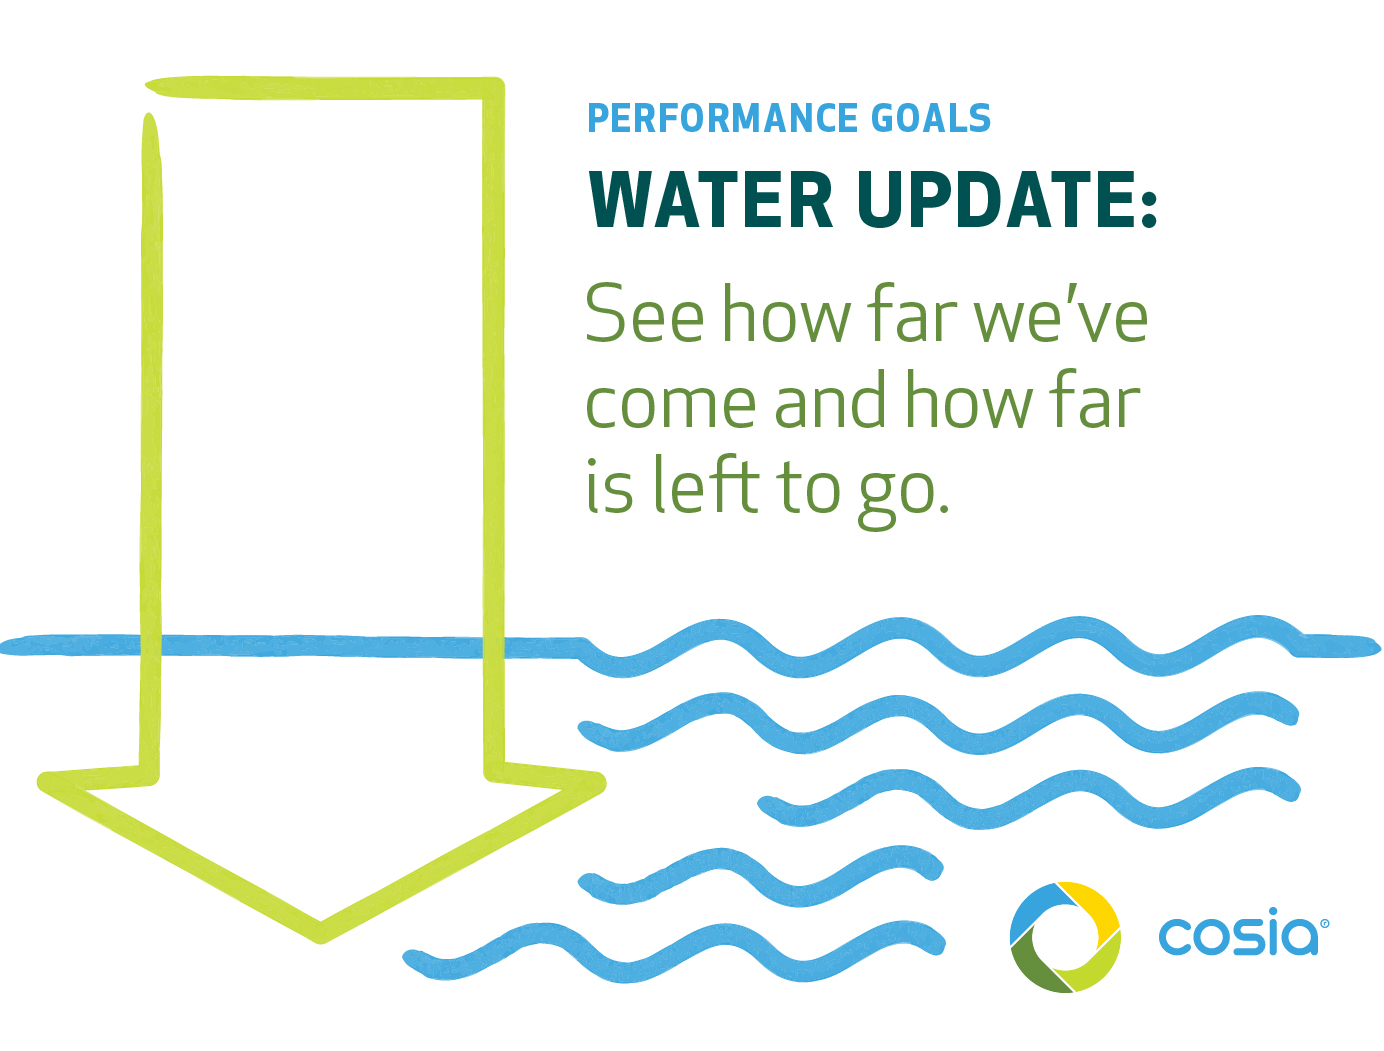 Performance Goals - Water Update: See how far we've come and how far is left to go.